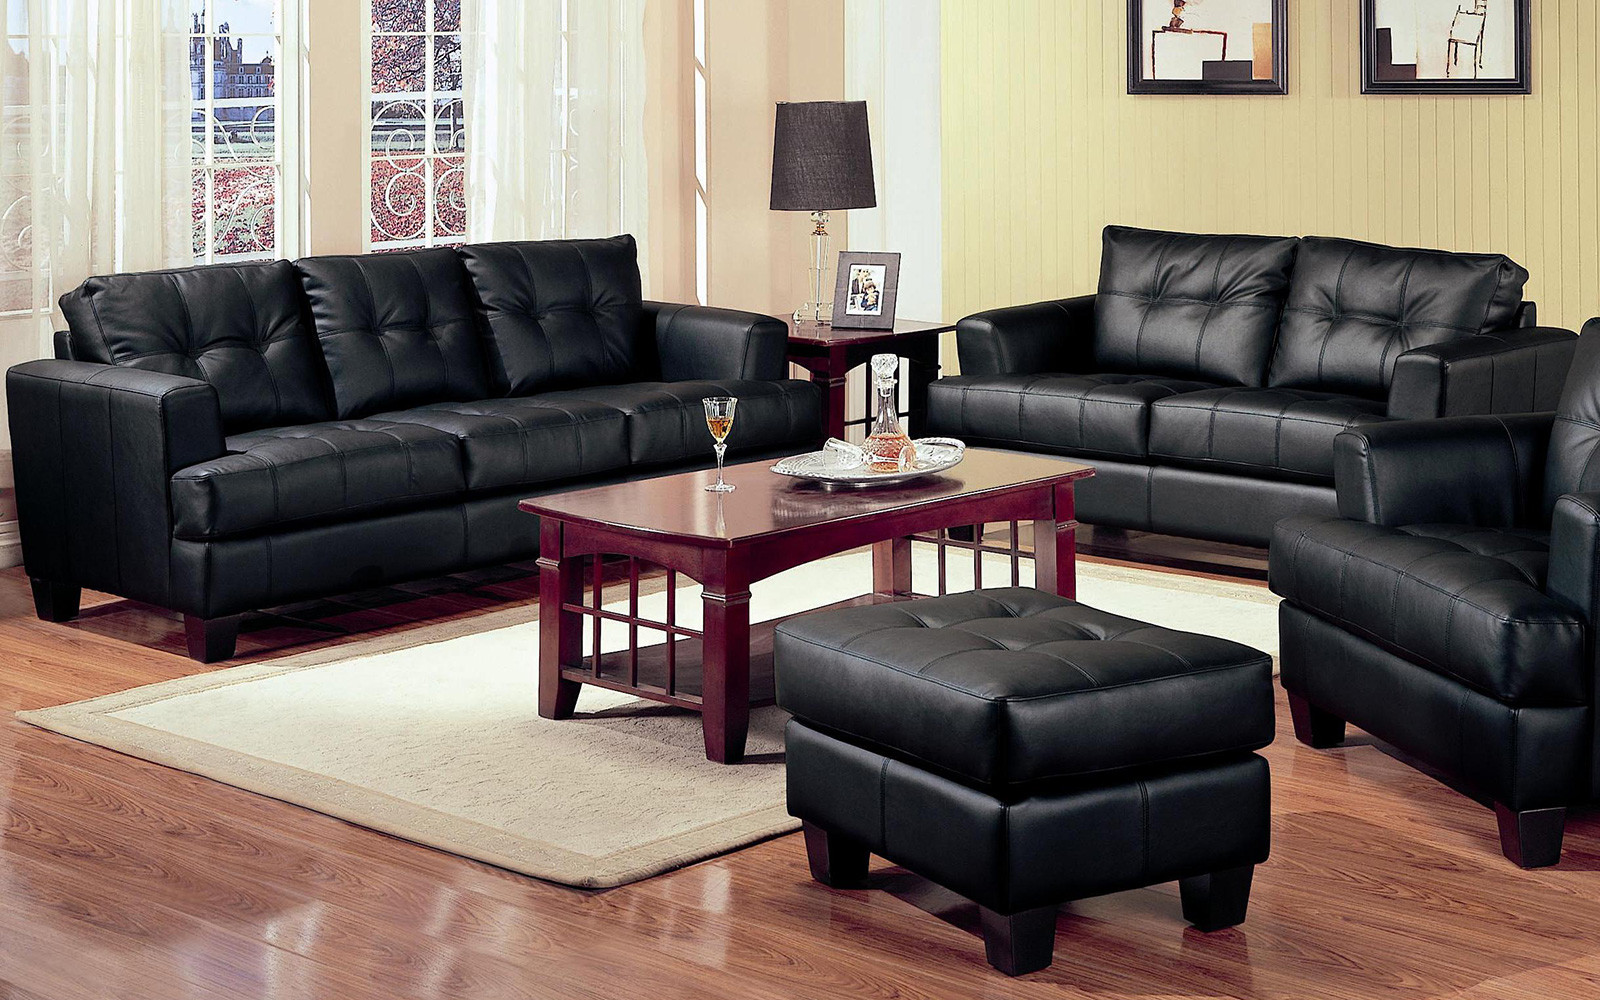 2 Piece Modern Black Bonded Leather Sofa And Loveseat Livingroom Set    Walmart.com